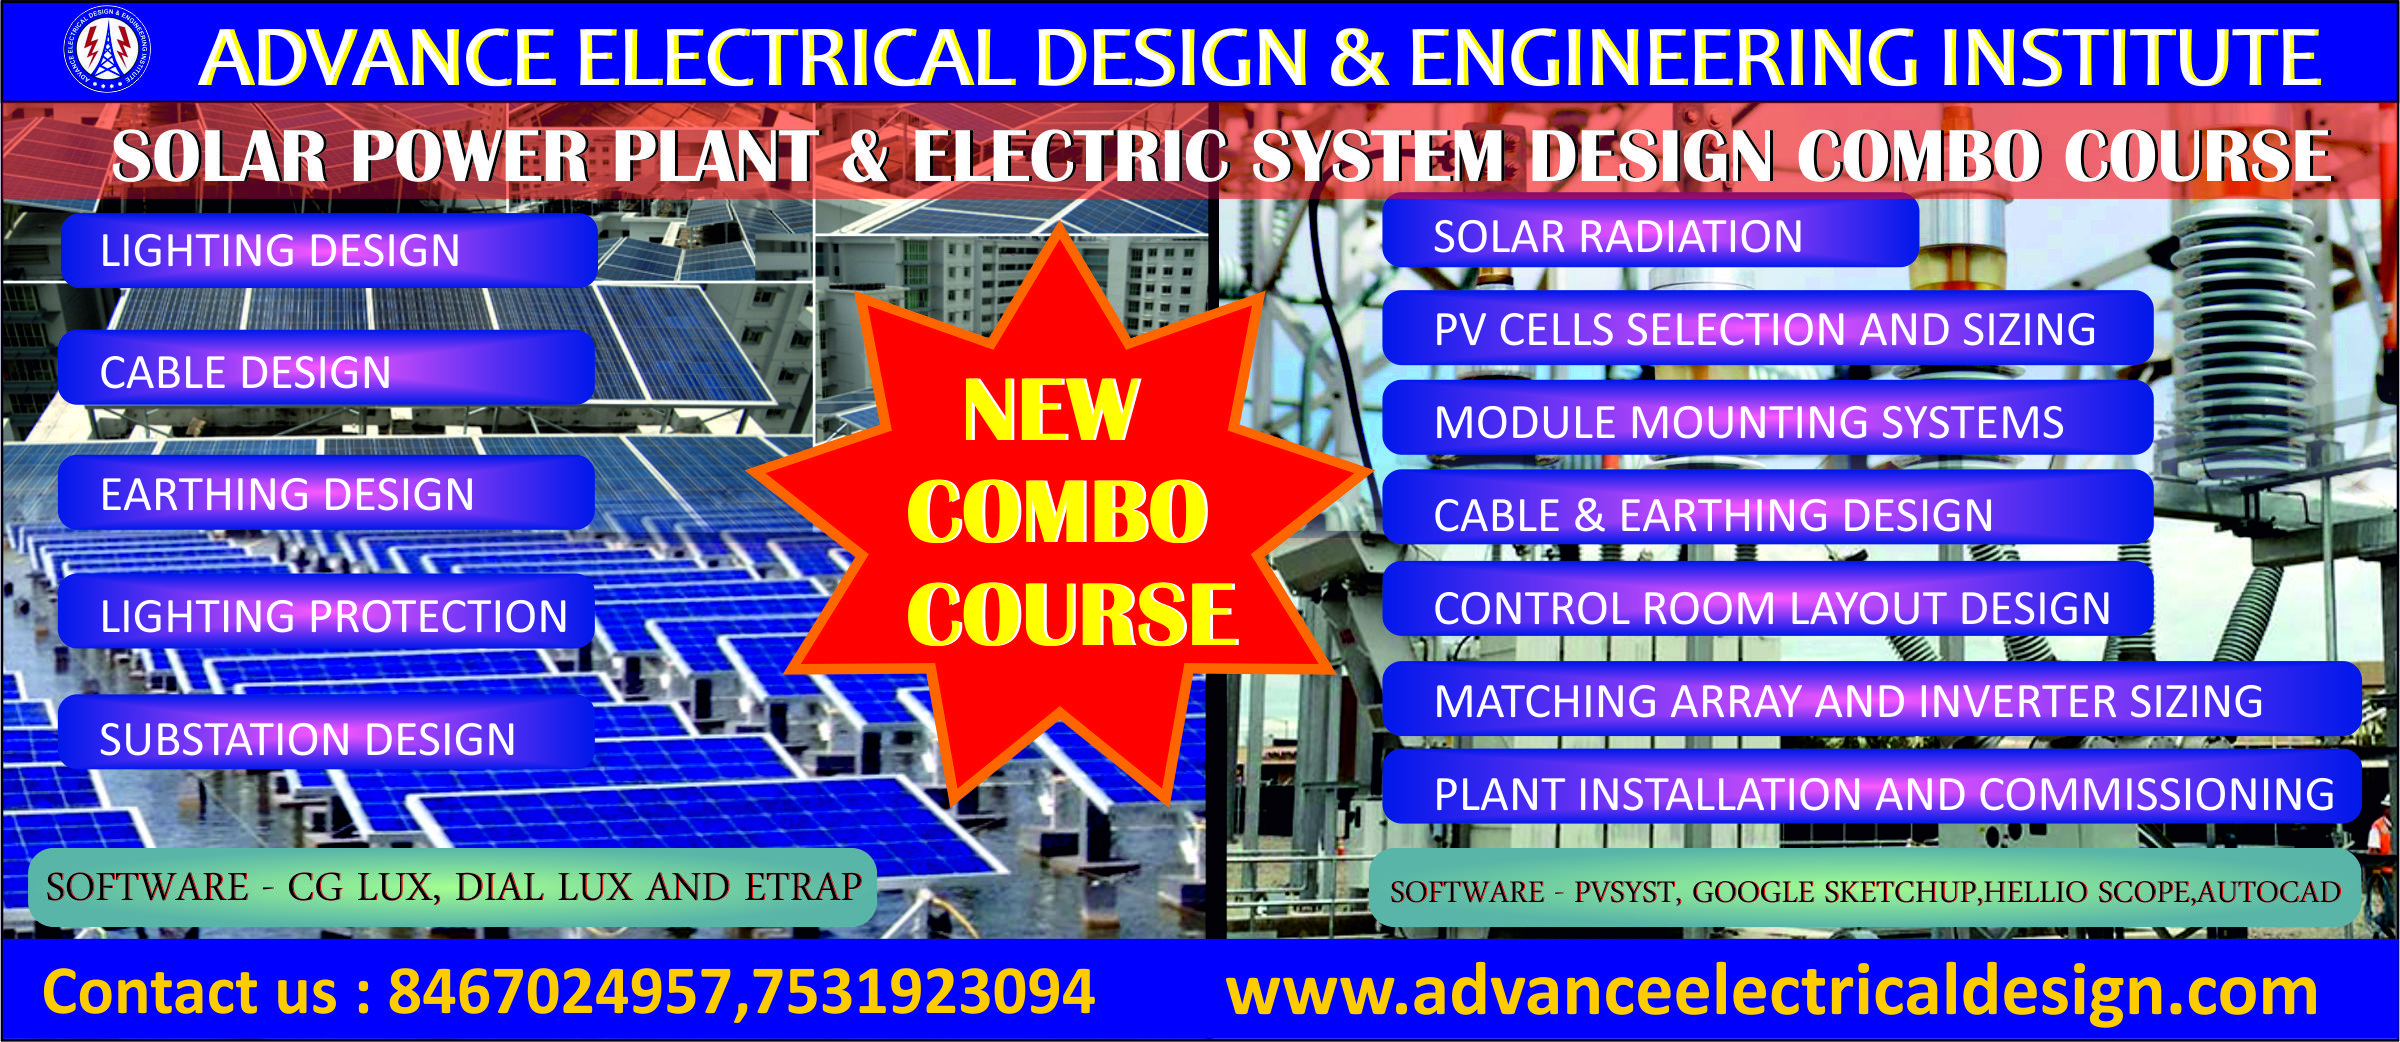 medium resolution of solar power plant design and electrical system design courses